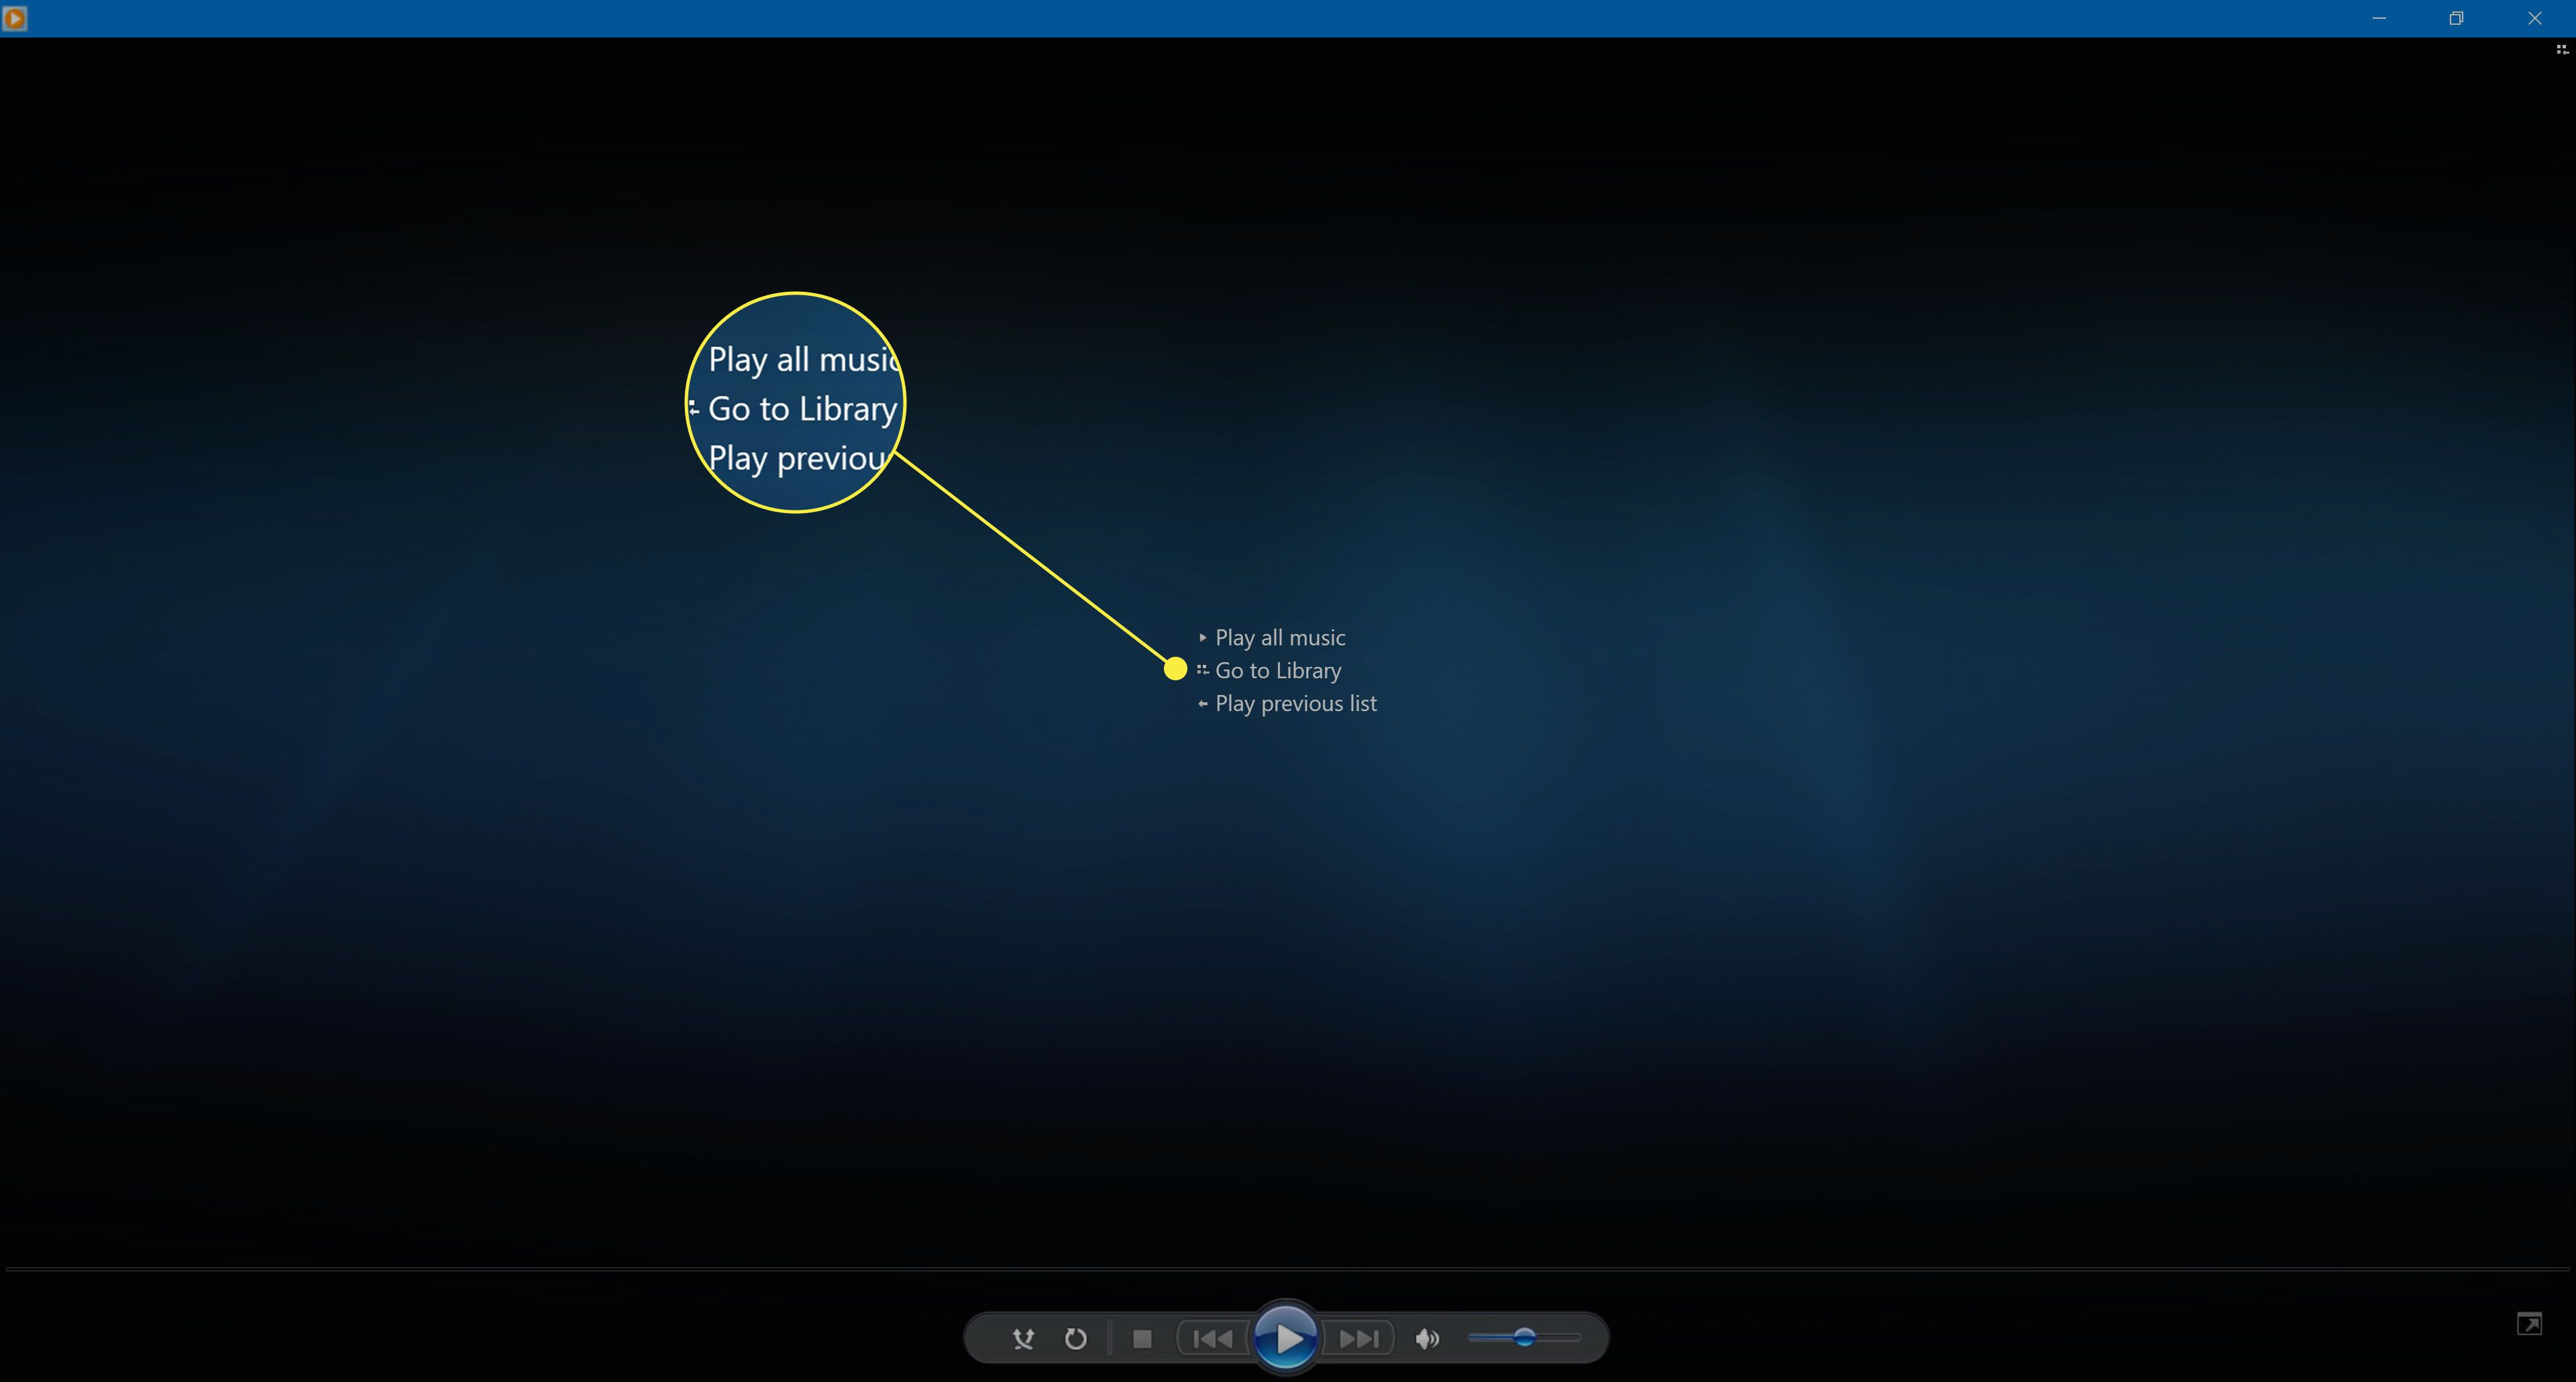 Selecting Go to Library in Windows Media Player 12.